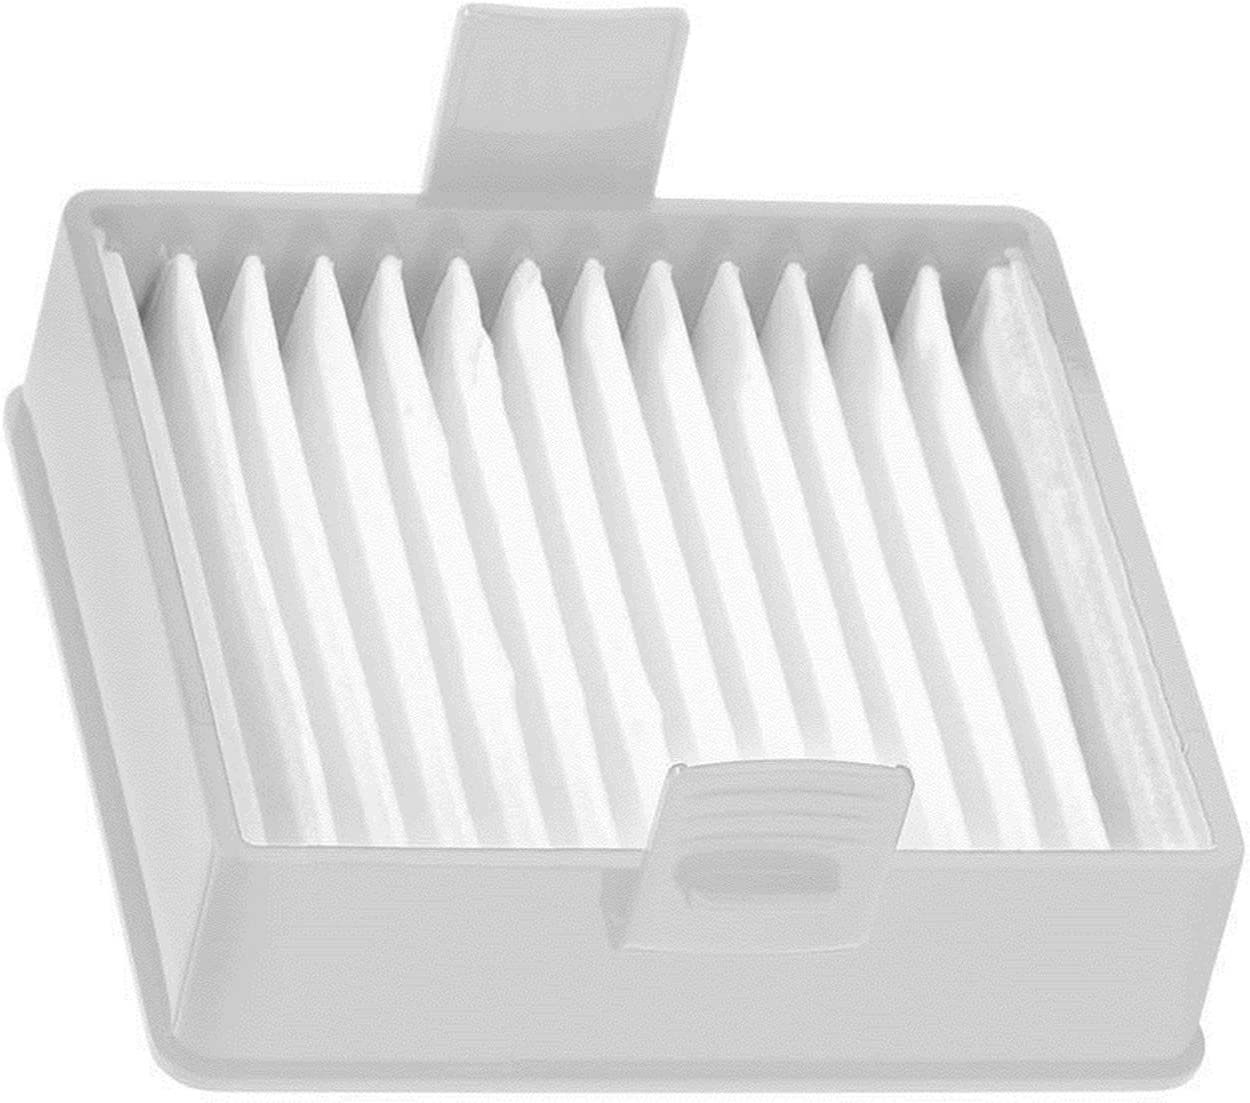 Eagleggo Replacement Filter for Ryobi Part # 019484001007, use with P712, P713, and P714K Hand vacuums